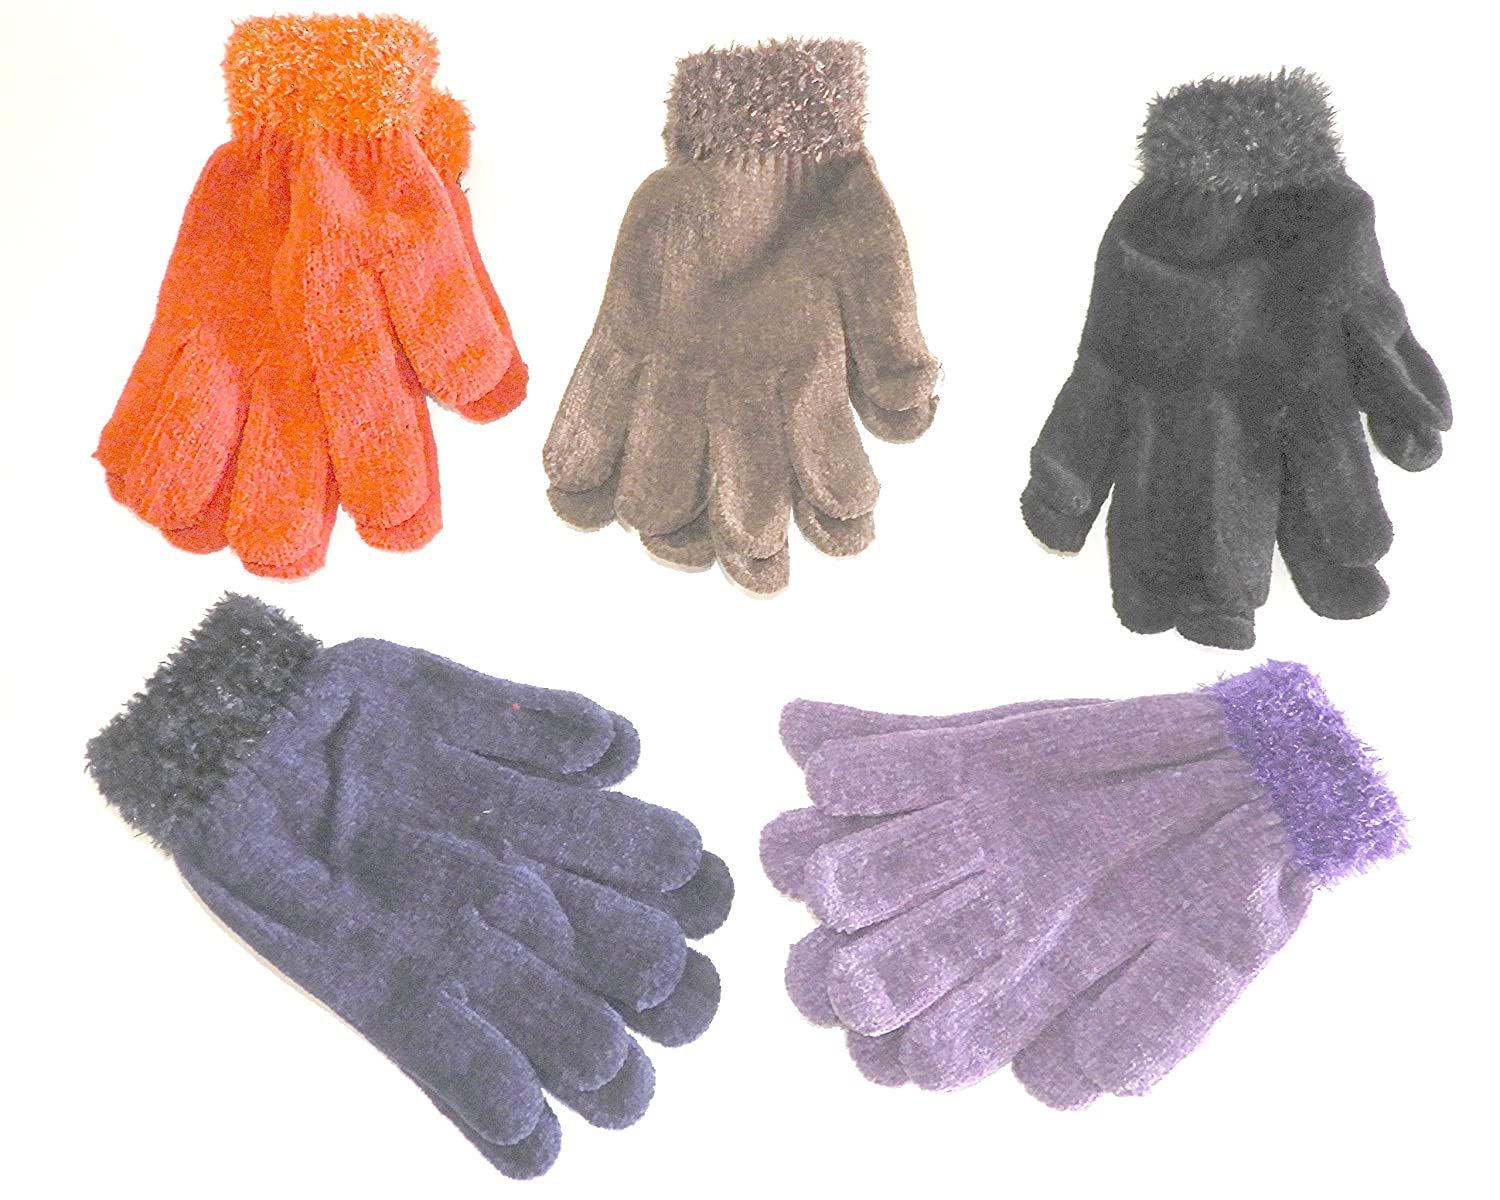 d9a13795917 (3 Pair) Ladies Warm Chenille Knit Magic Gloves With Feathered Cuff One  Size Fits